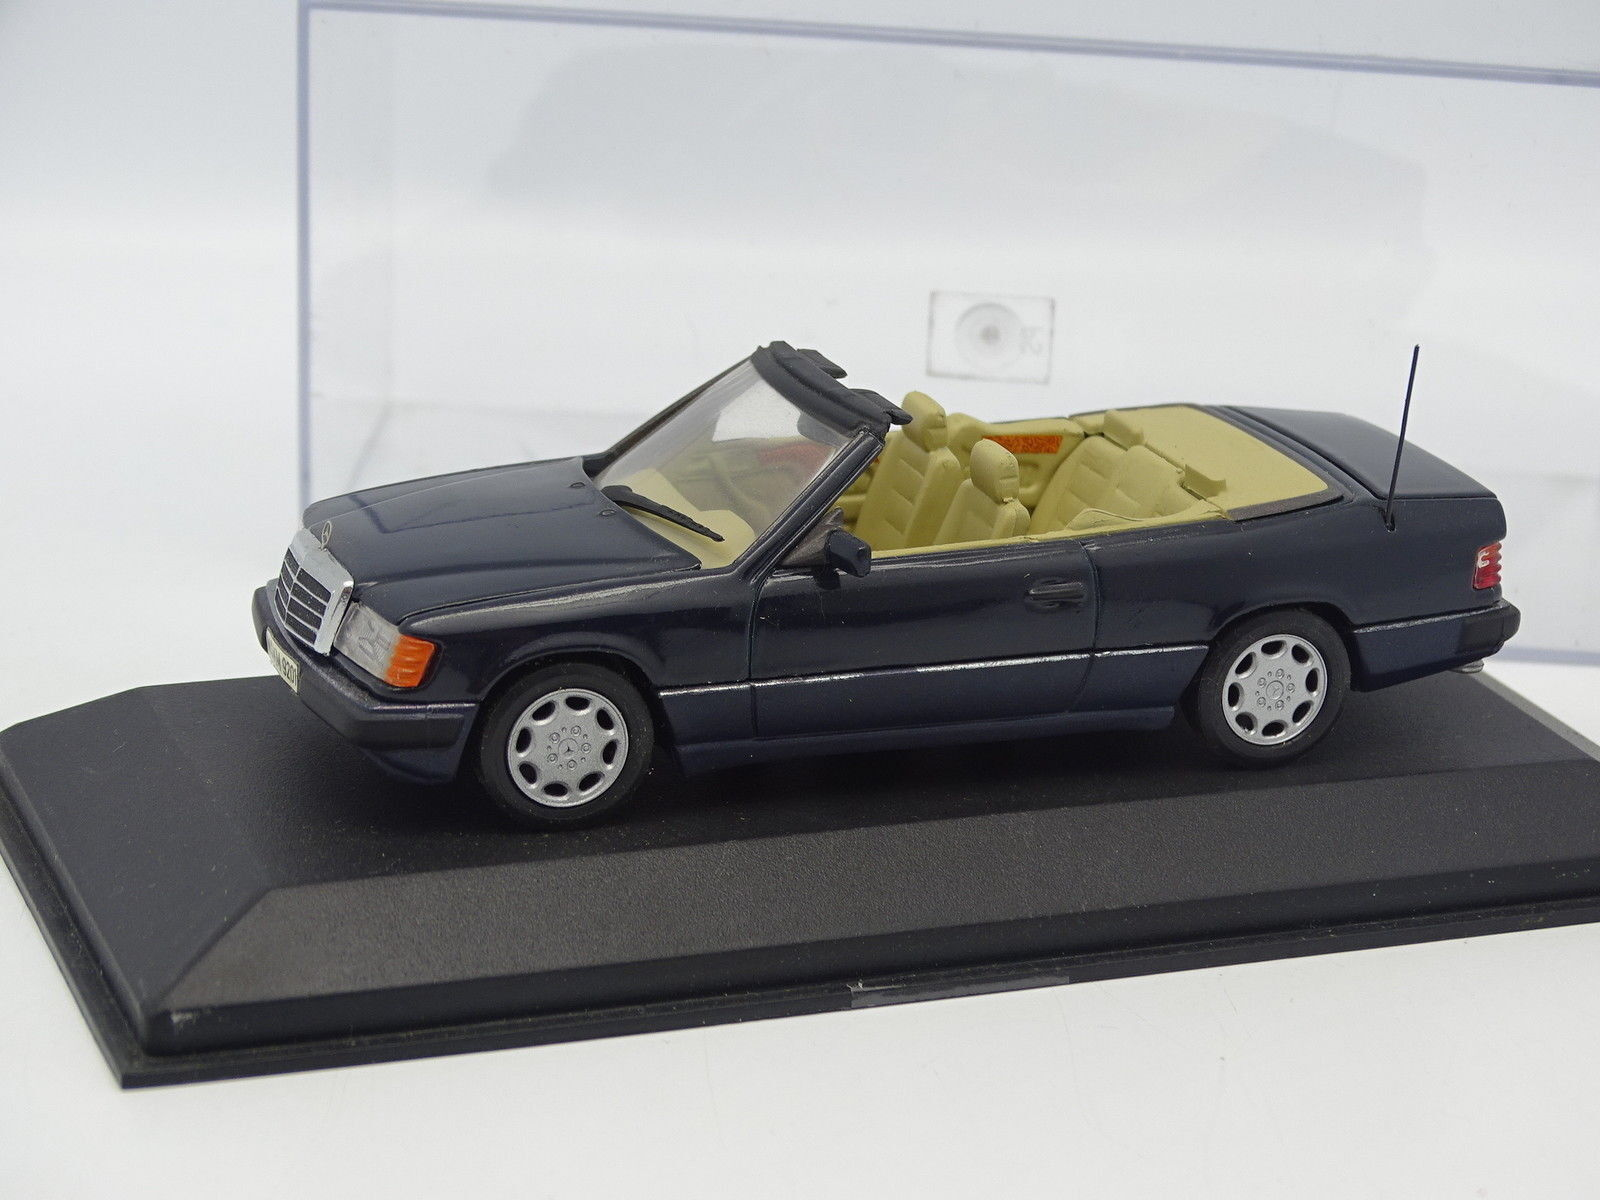 Minichamps 1 43 - Mercedes 300 300 300 CE 24 Cabriolet bluee 7f0f29